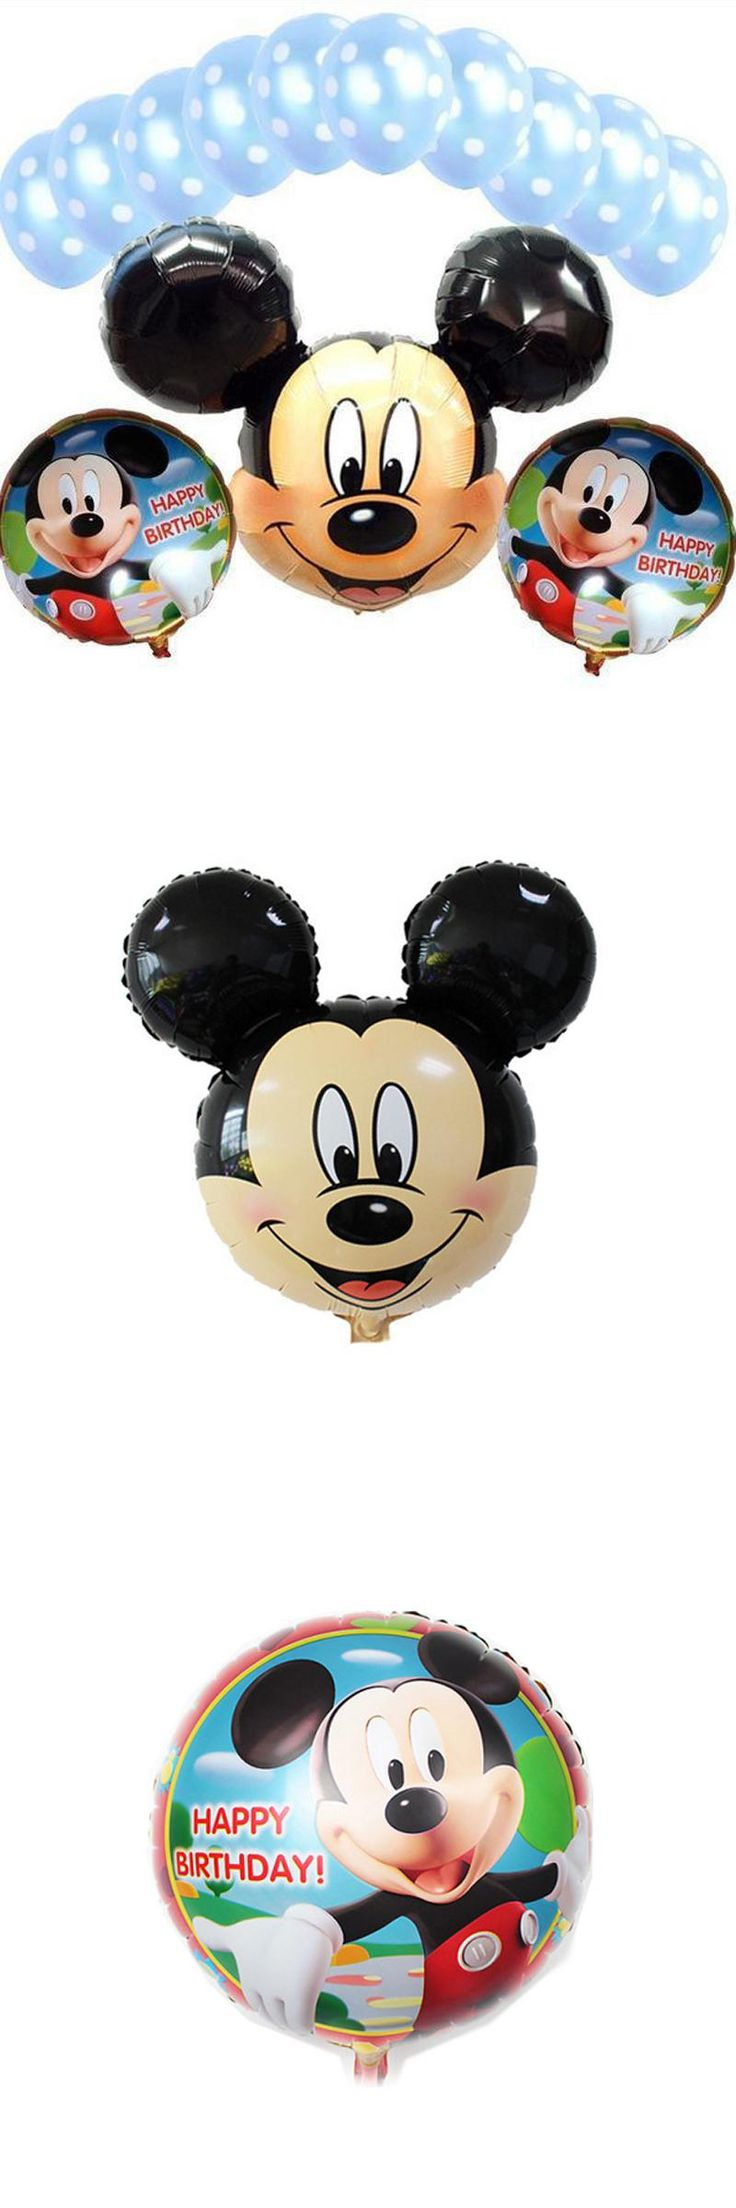 [Visit to Buy] New arrival 13 Pcs/lot Mickey mouse party supplies decoration Combination suit Foil balloons birthday party decoration Hot sale #Advertisement